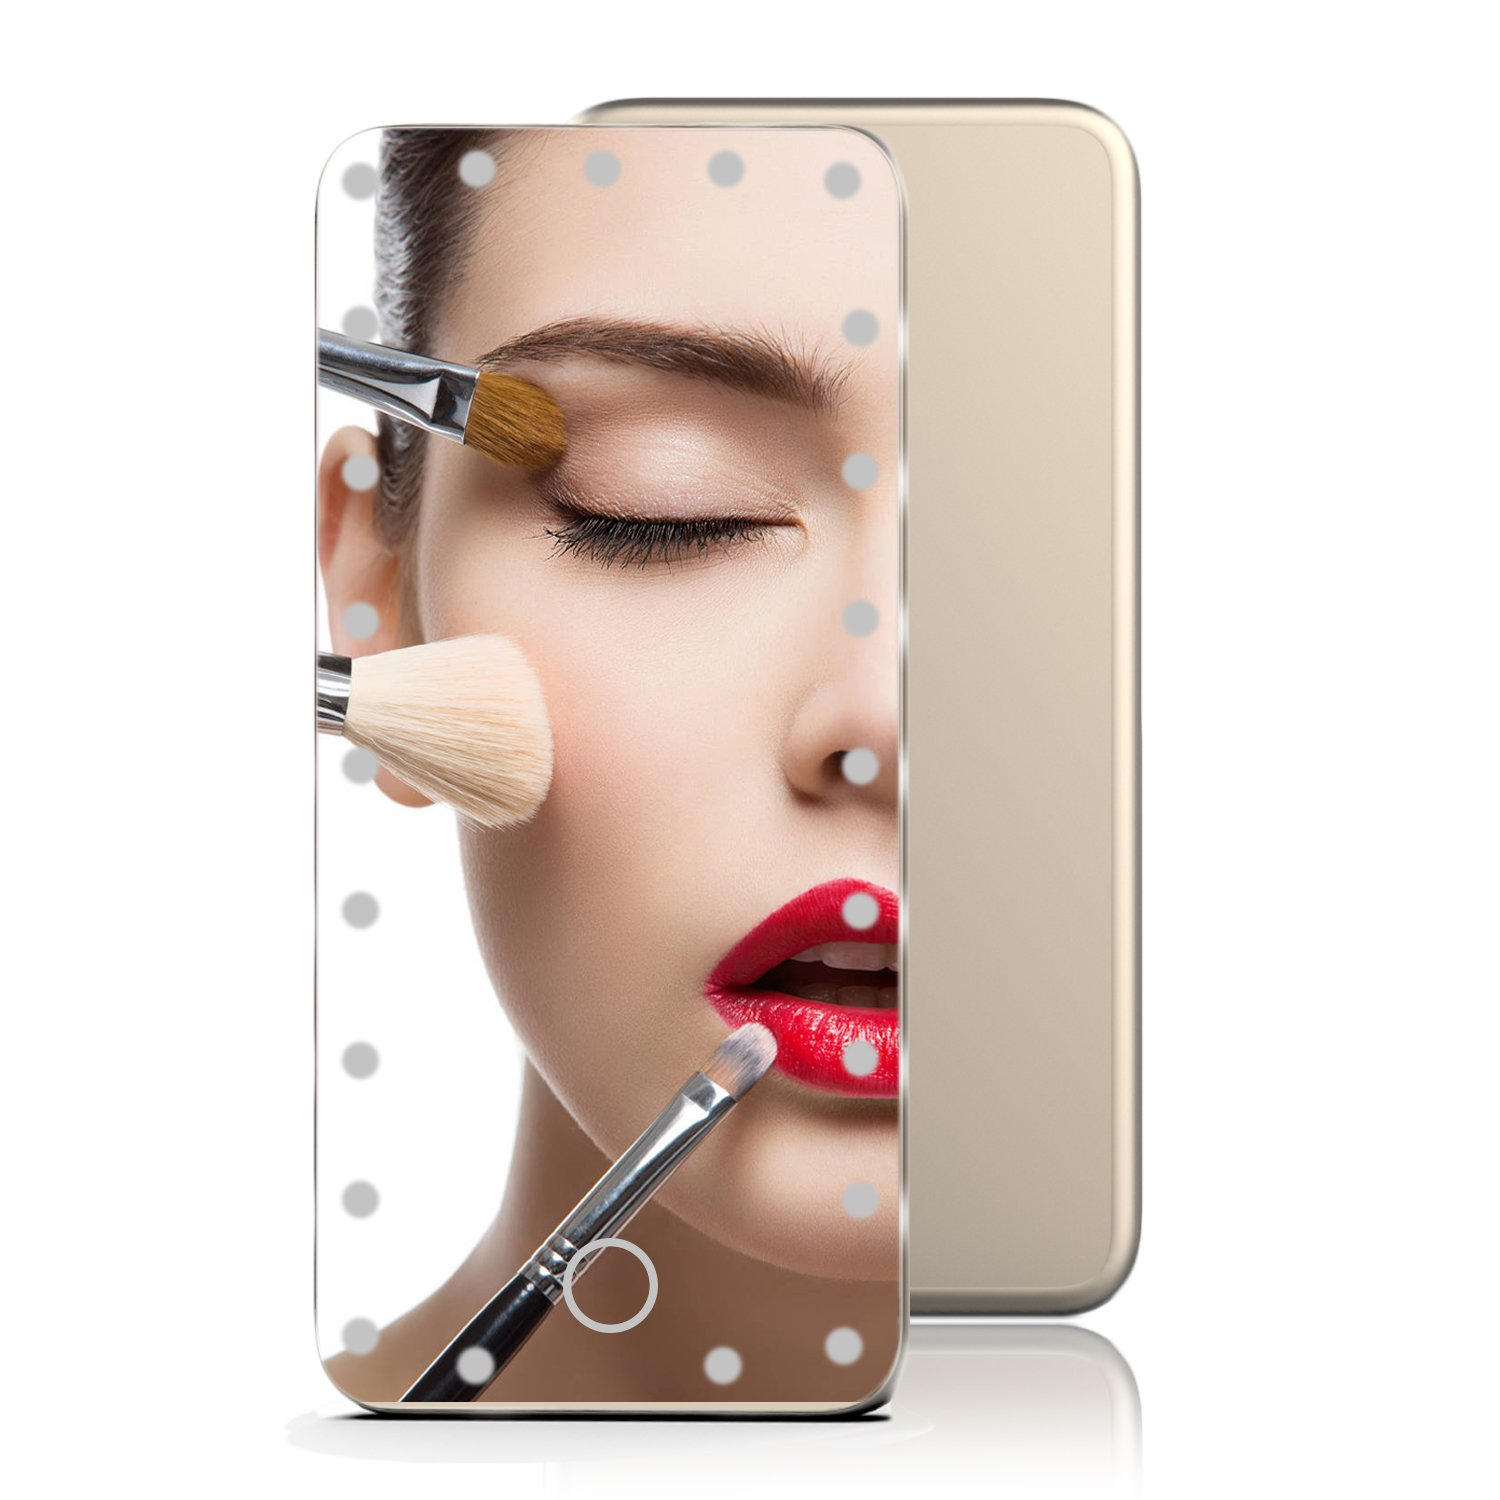 LoiZau Lighted Makeup Mirror, 23 LEDs 5.5 Inch Portable Vanity Makeup Mirror with Lights for Travel USB Charging(Champagne Gold)